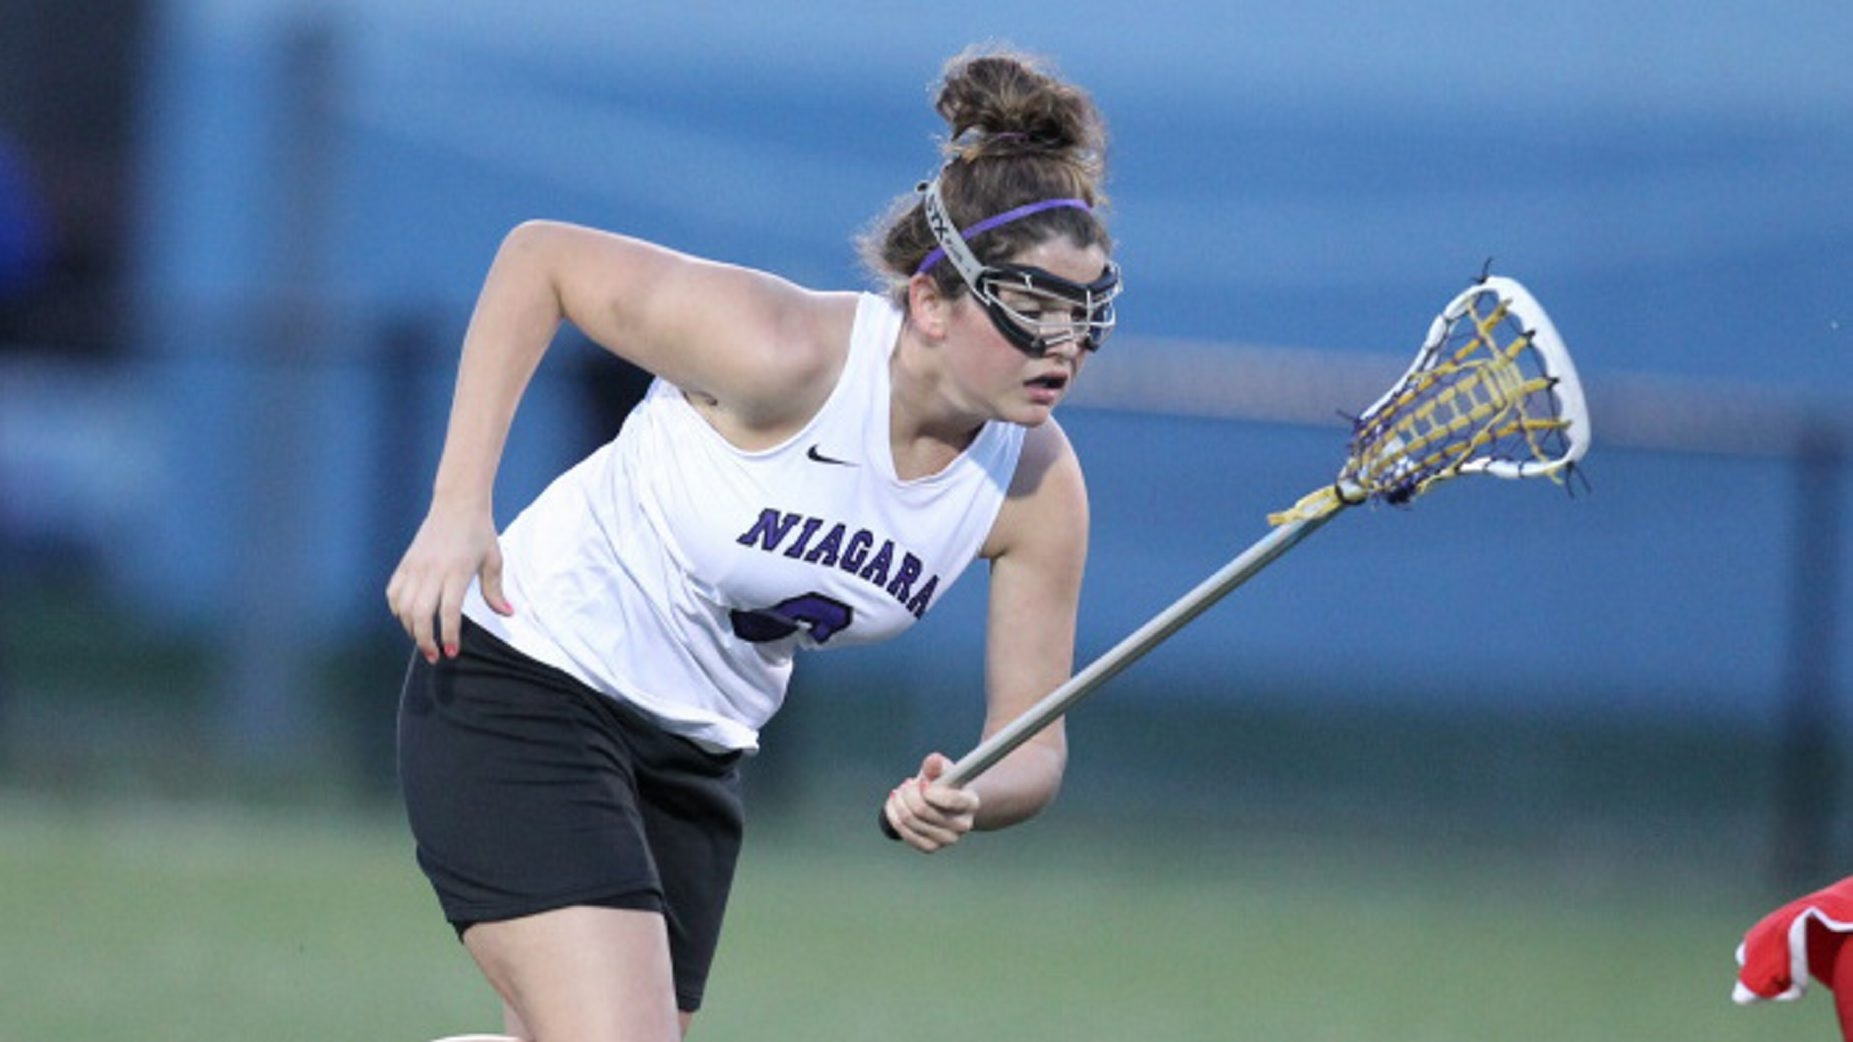 Carrie-Jo Farrugia leads Niagara with determination and hard work.